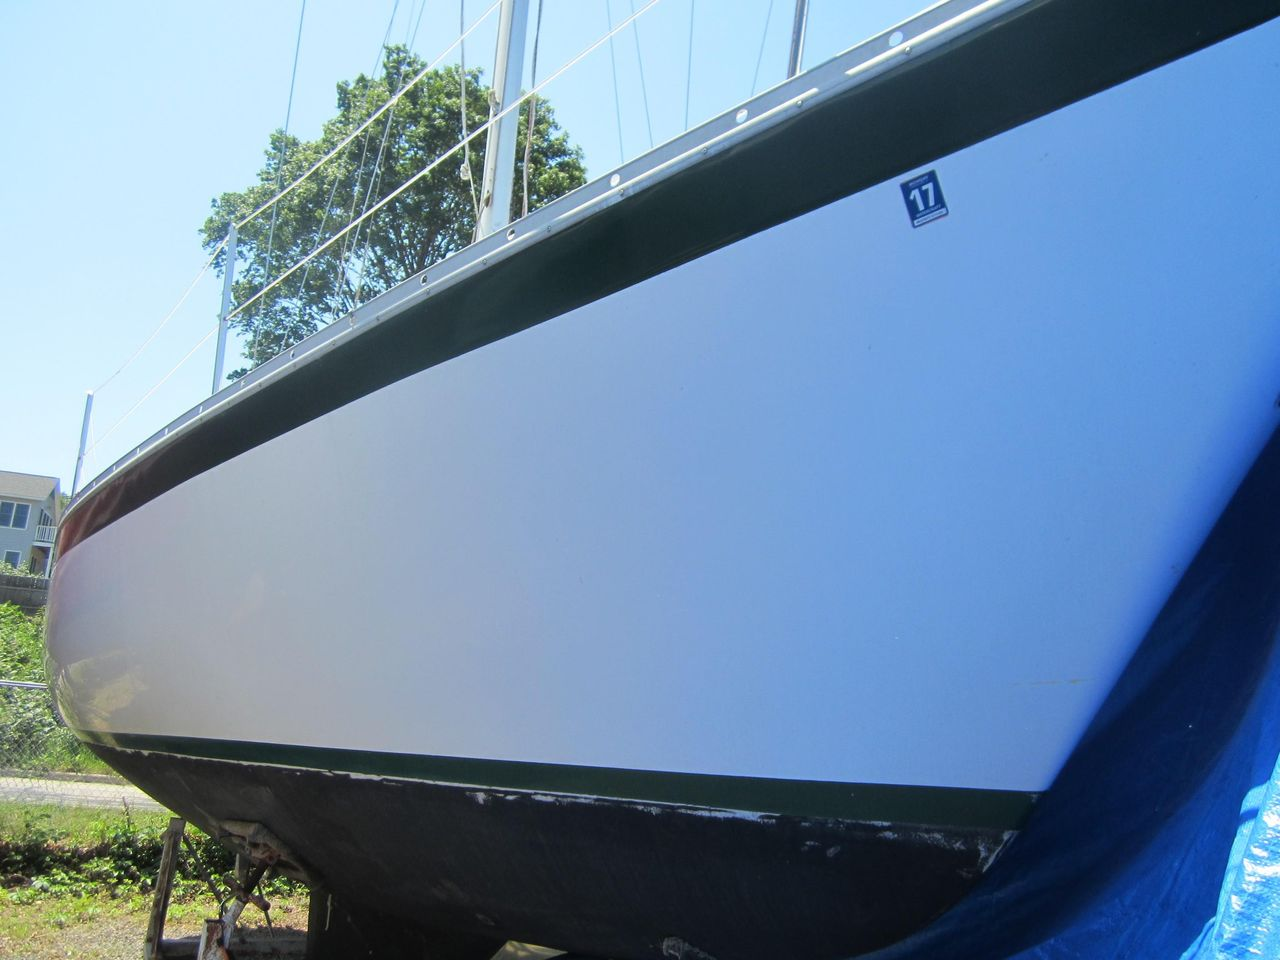 1980 Used Irwin Citation 34 Sloop Sailboat For Sale - $11,995